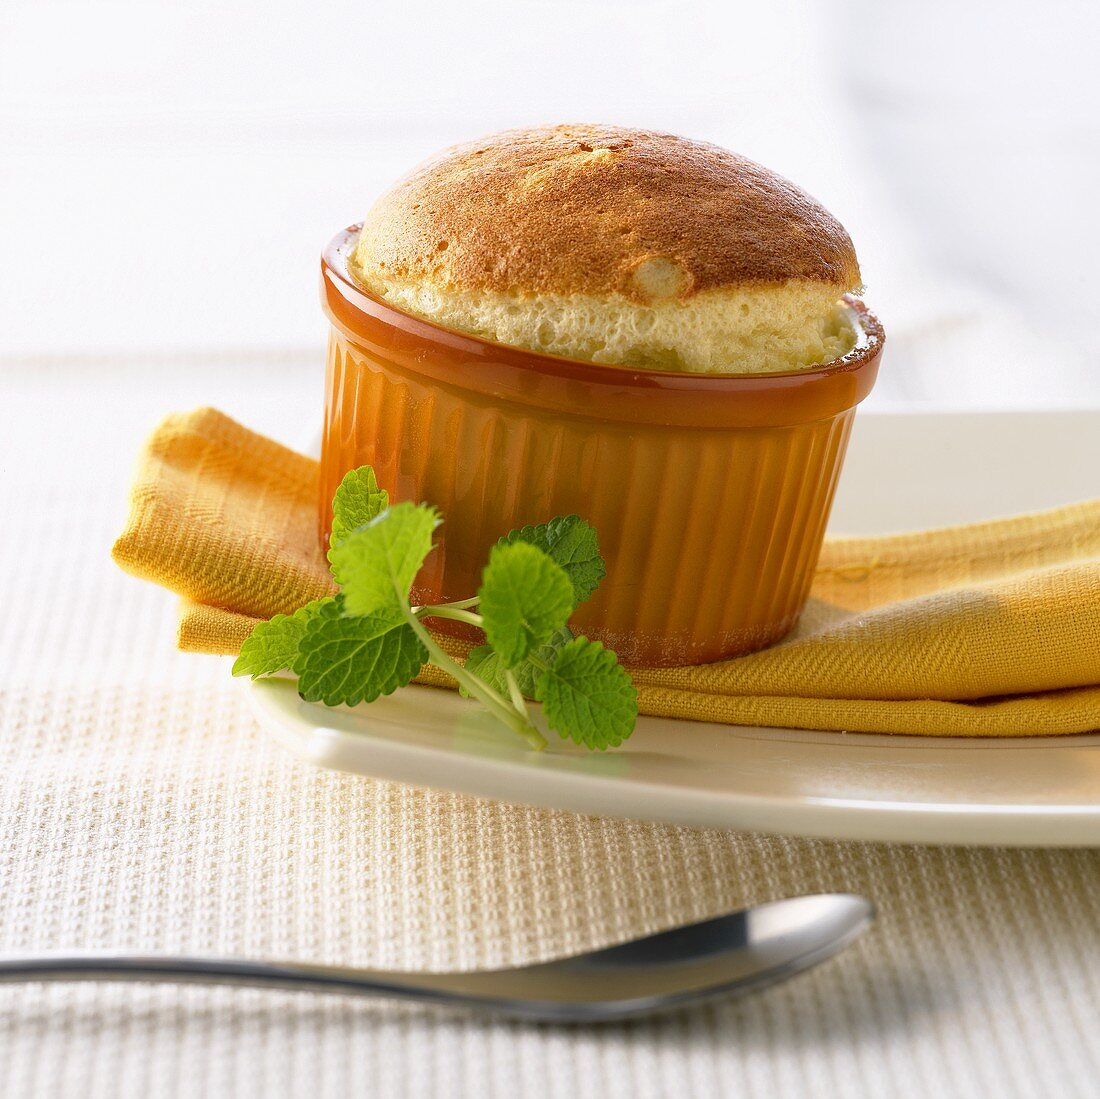 Grand Marnier soufflé in small moulds